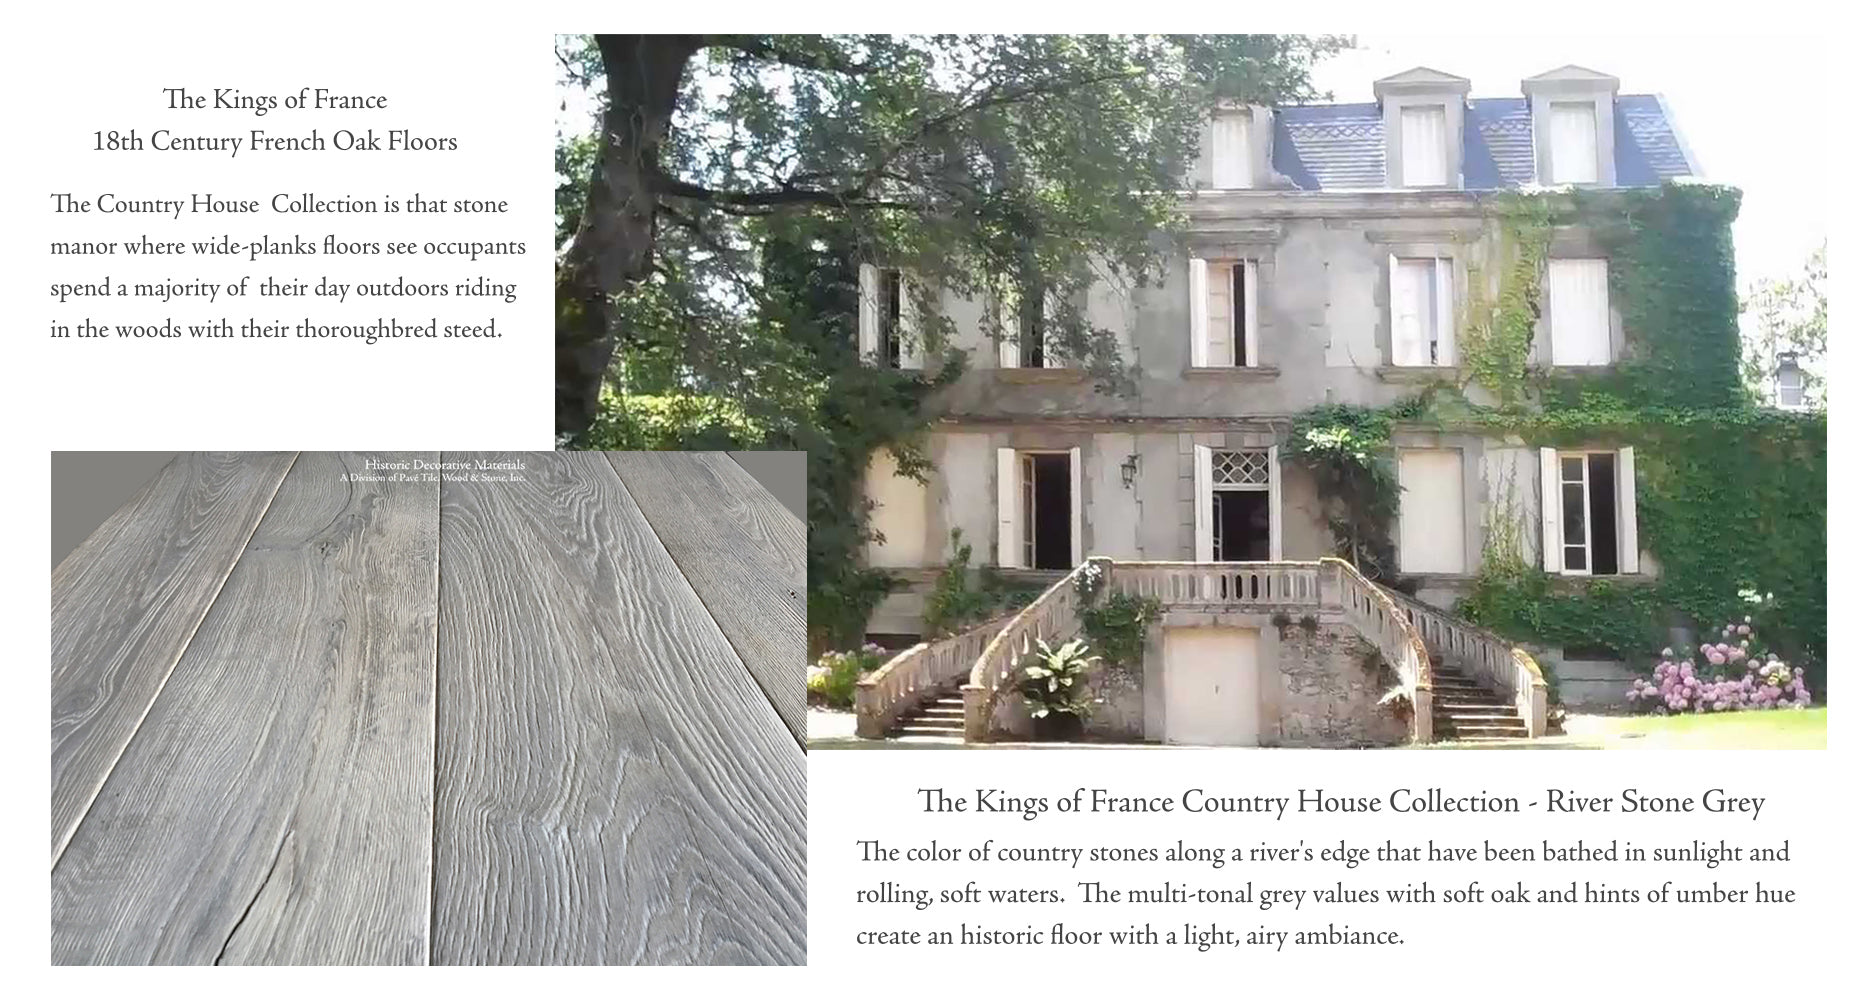 Kings of France 18th Century French Oak Flooring - The Country House Collection